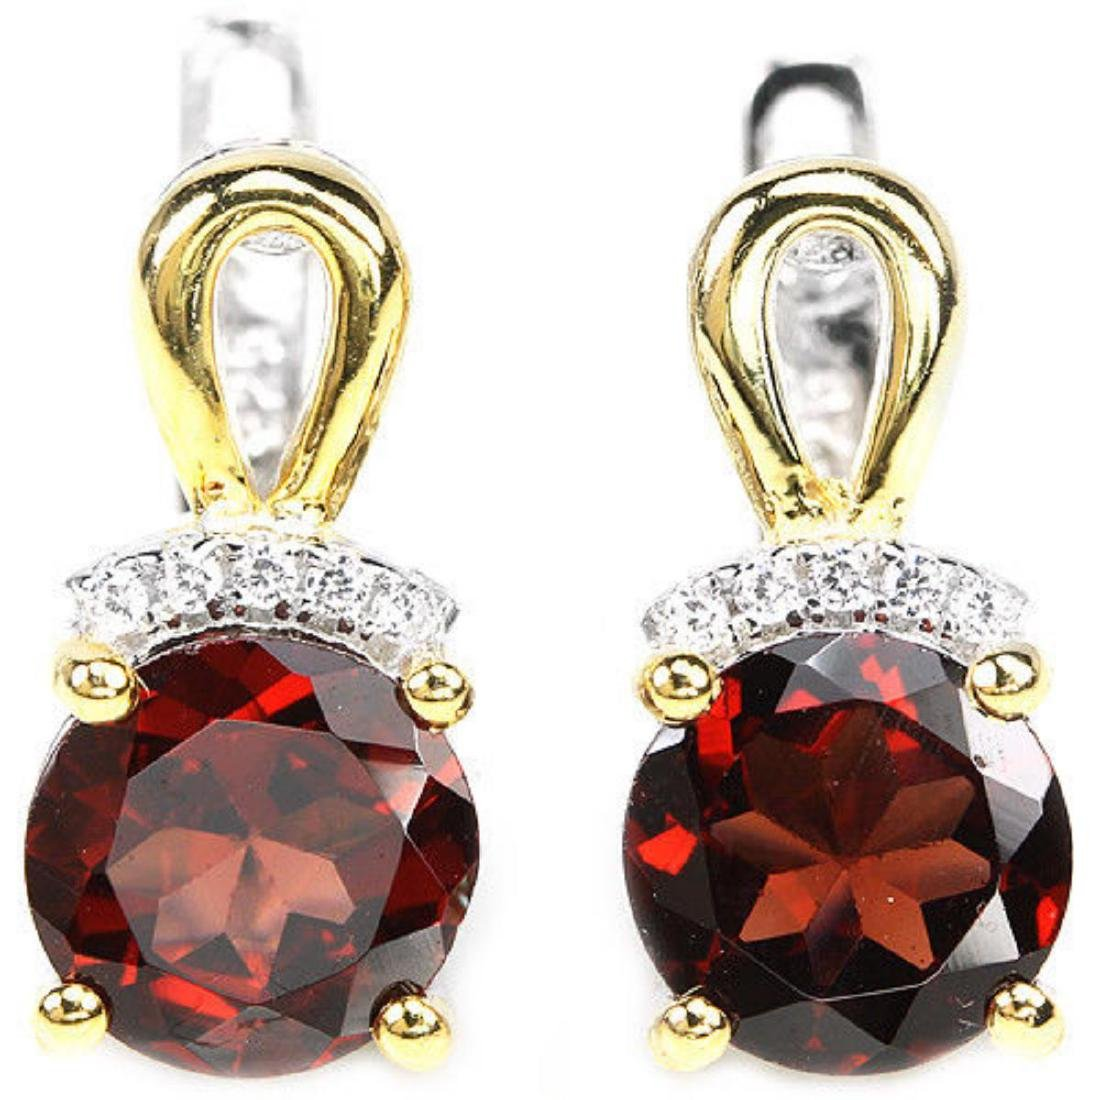 NATURAL DARK RED GARNET Earrings